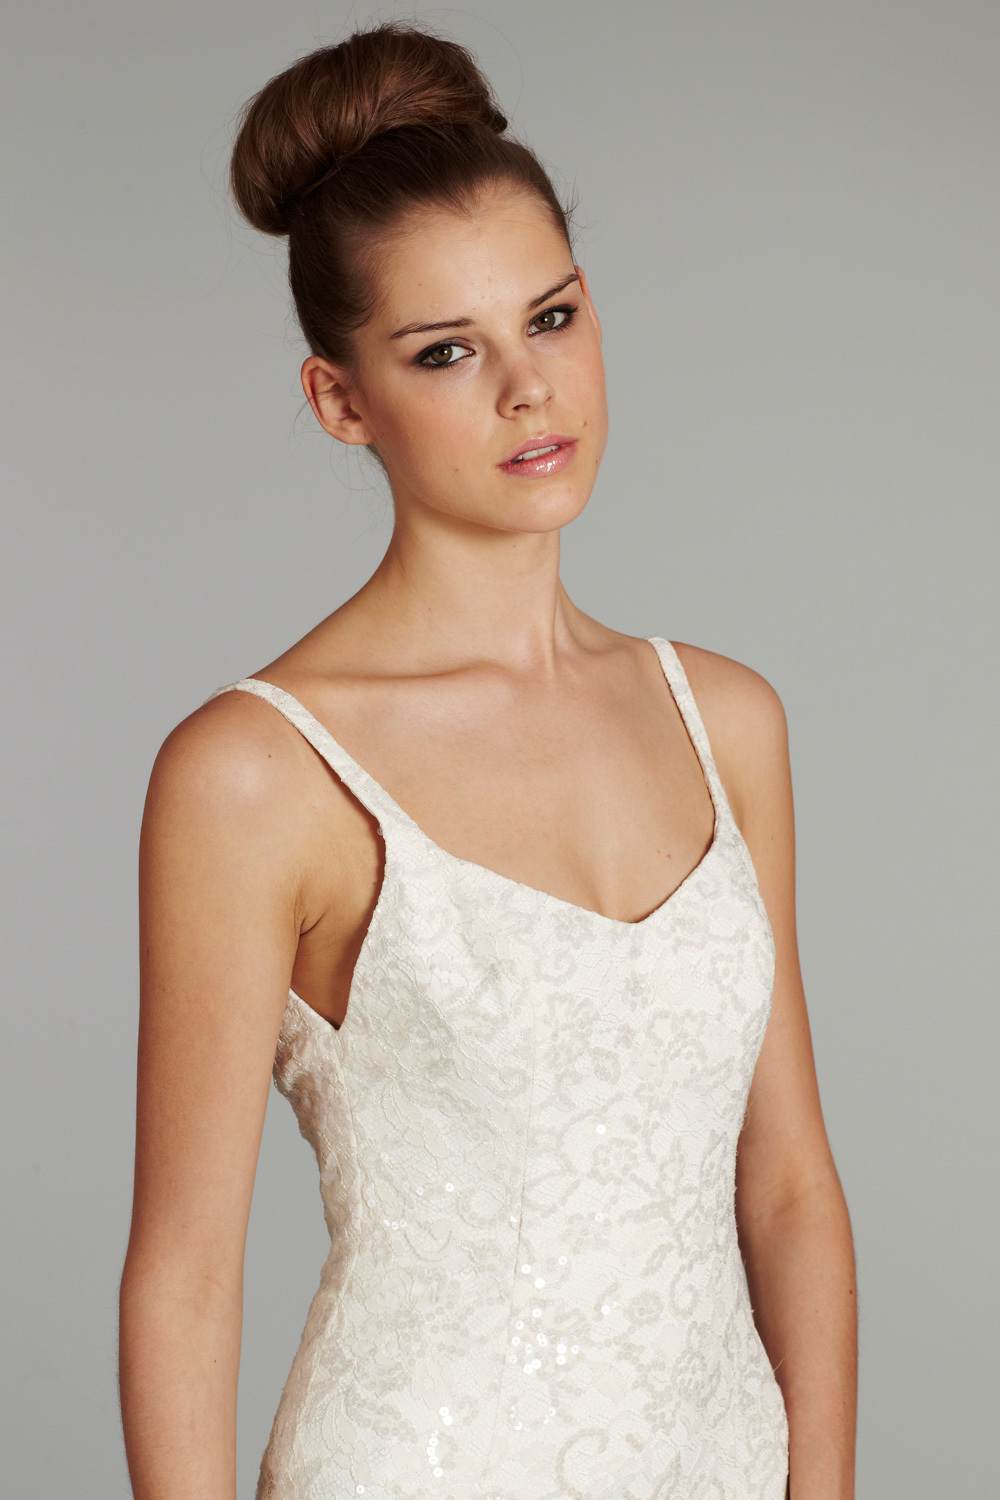 Bridal-gown-wedding-dress-jlm-hayley-paige-fall-2012-vanna-detail.full